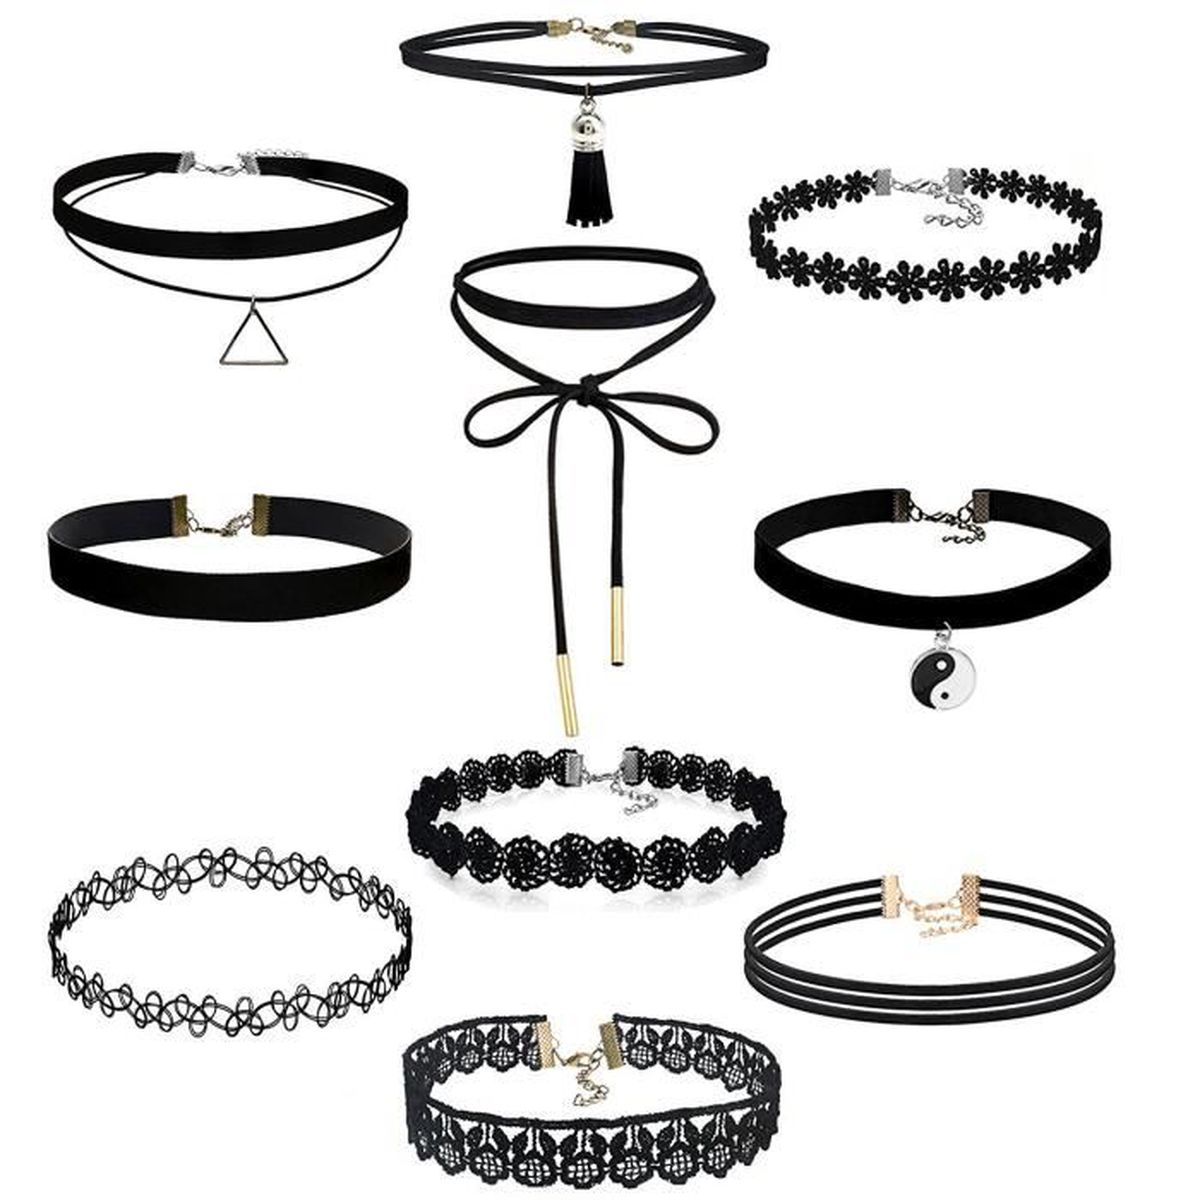 collier ras du cou choker noir dentelle elastique reglable style femme bijoux fantaisie tendance. Black Bedroom Furniture Sets. Home Design Ideas